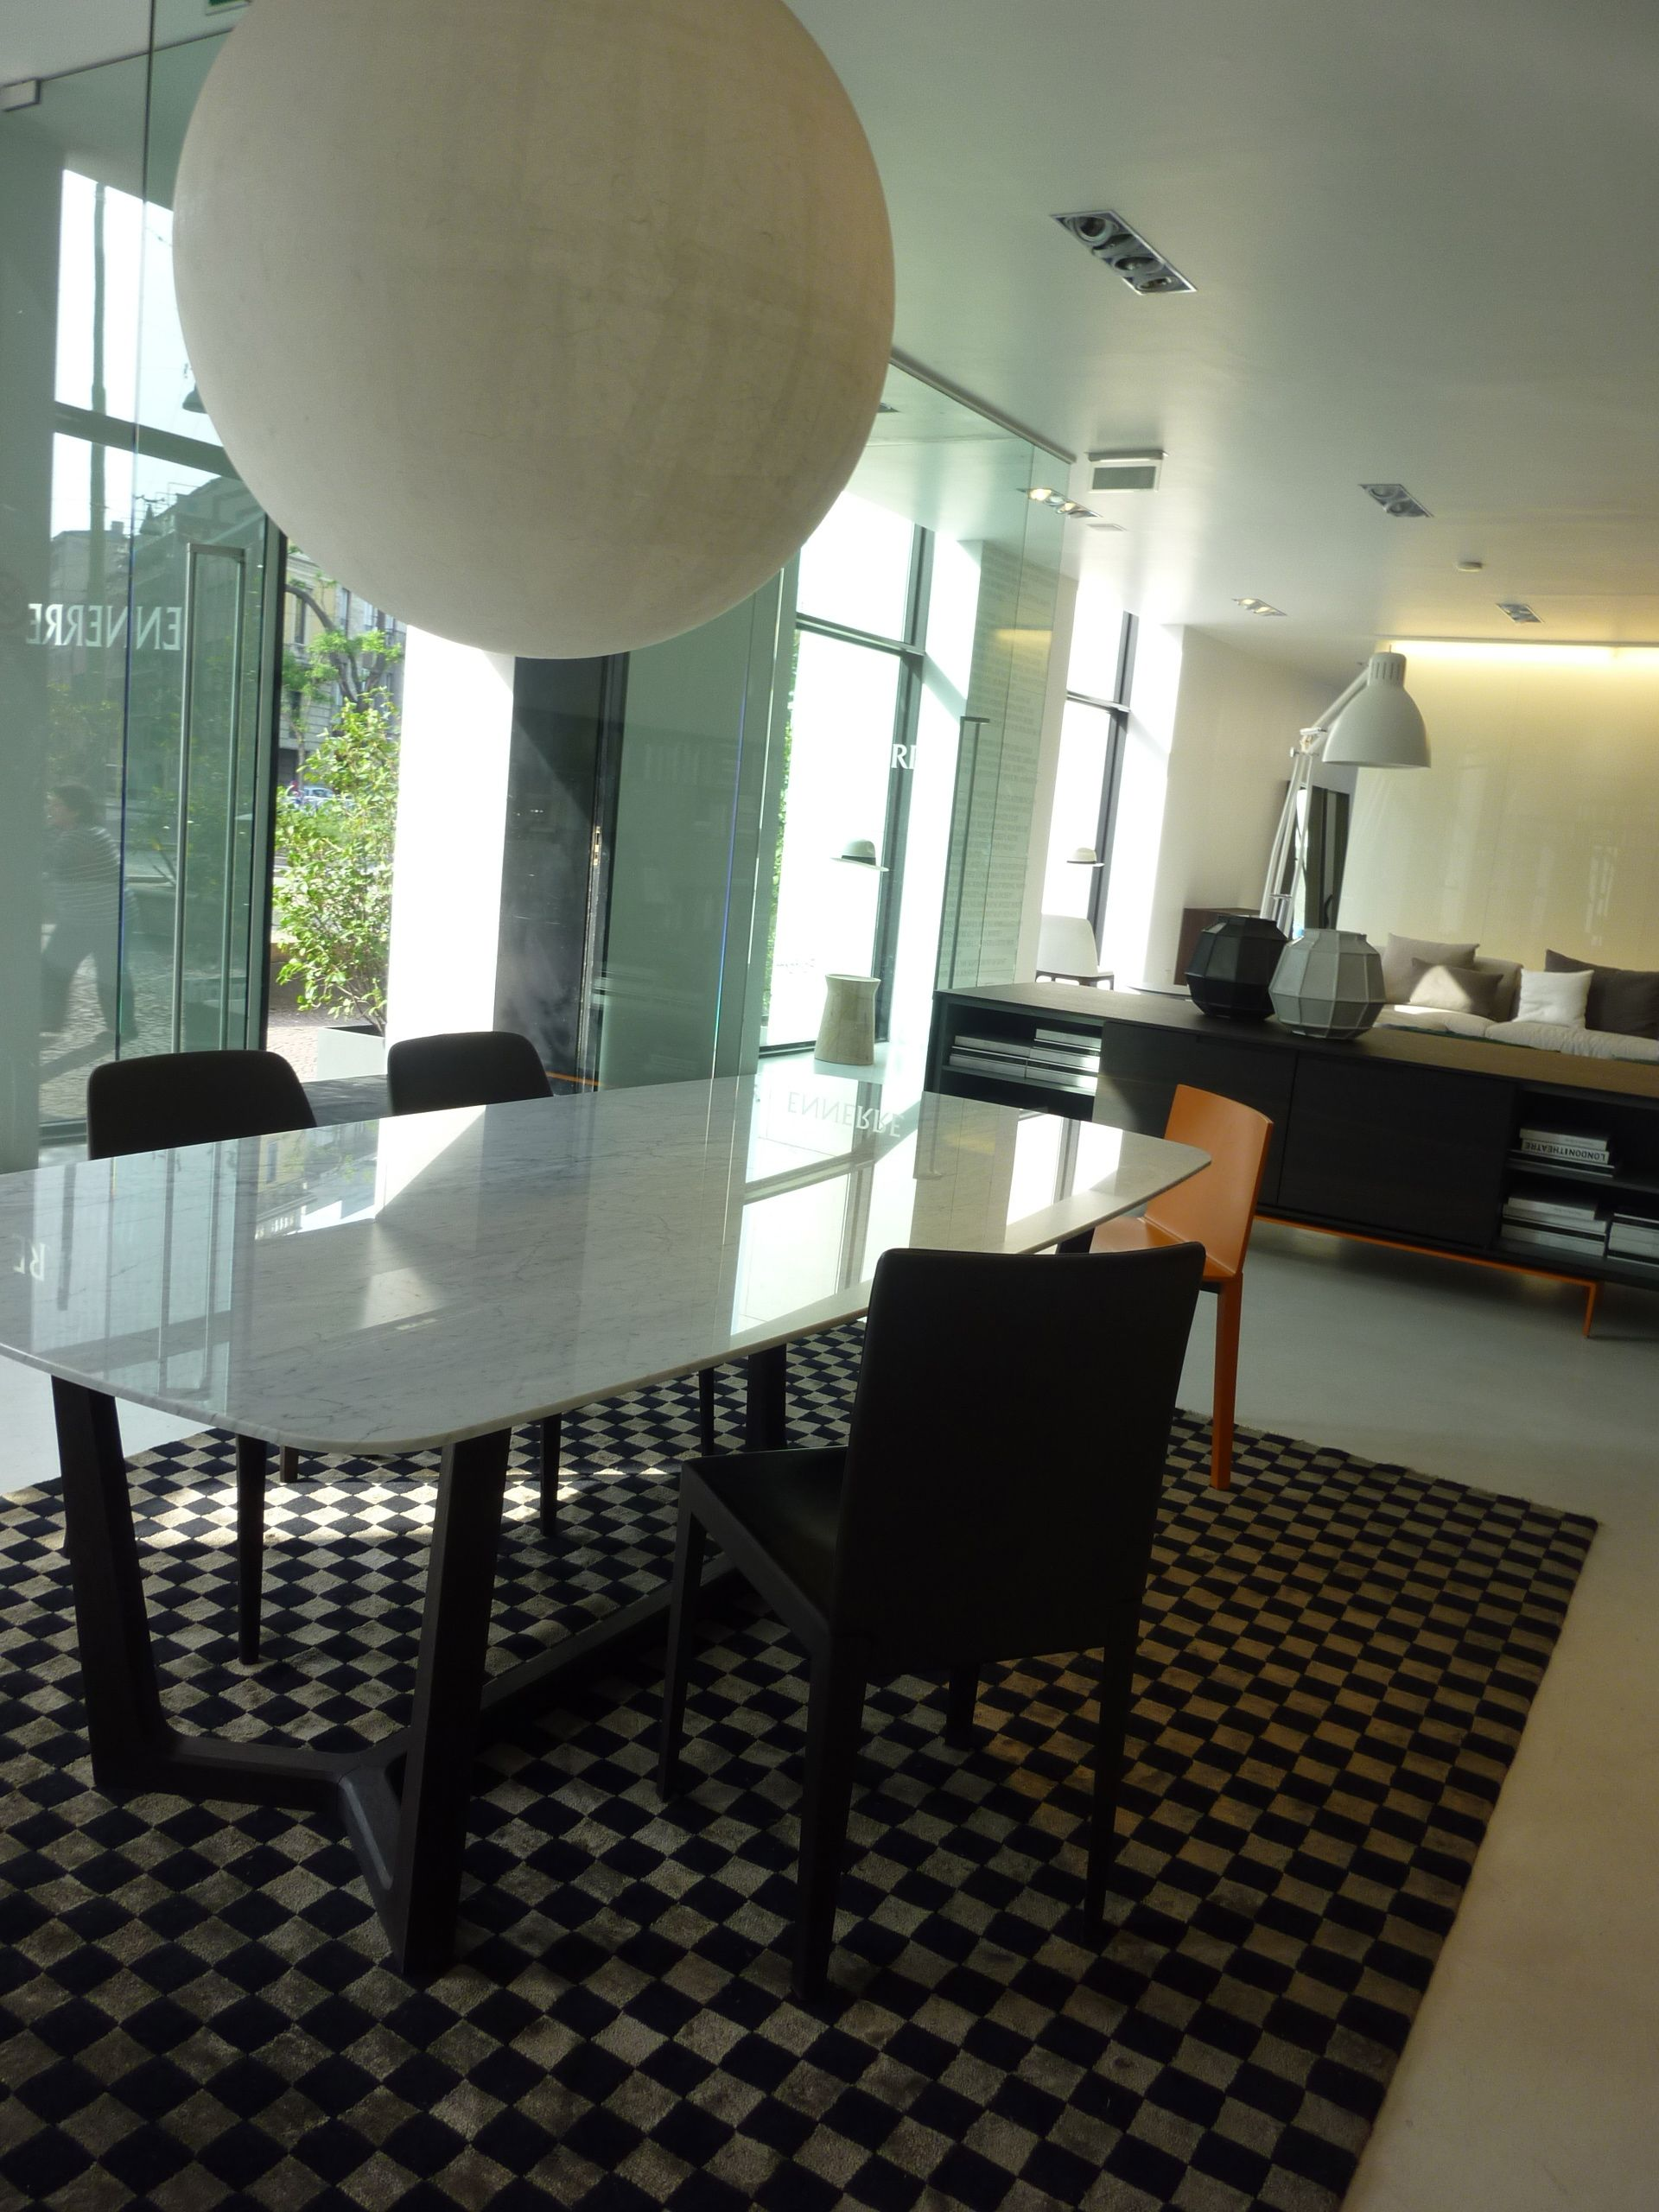 Concorde Dining Table Grace Chairs  Brand  Poliform  Pinterest Glamorous Building A Dining Room Table Design Inspiration